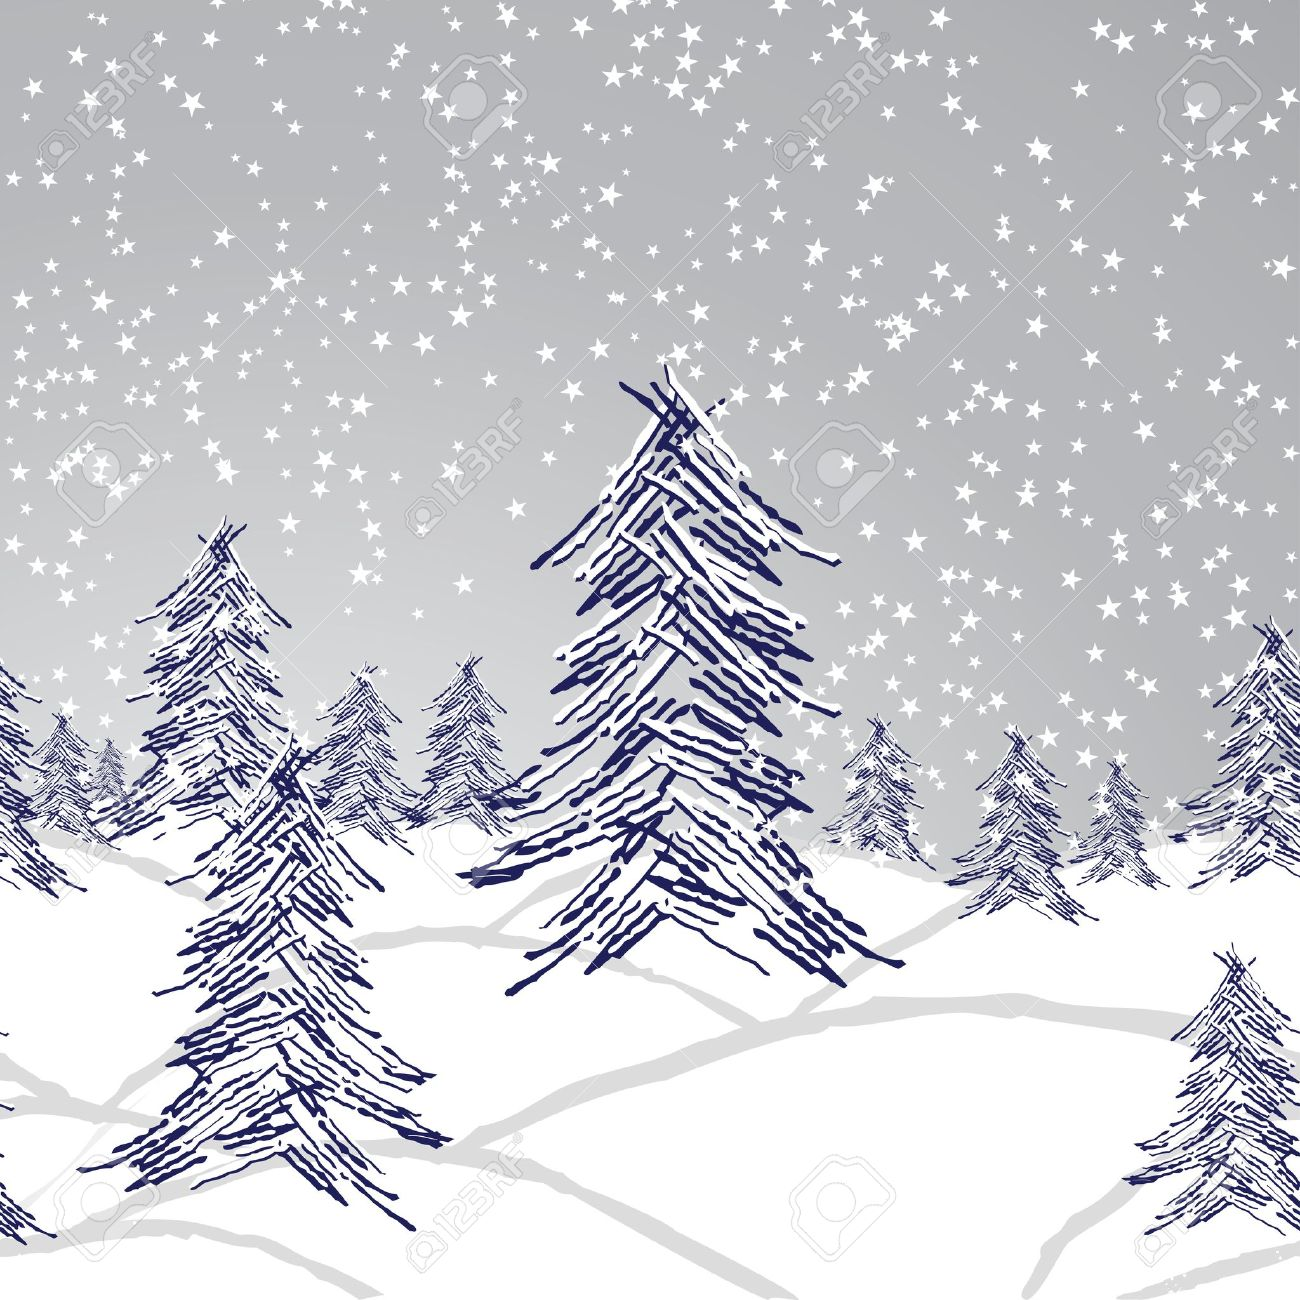 Winter Christmas Landscape Forest Tree Snow Background Seamless Royalty Free Cliparts Vectors And Stock Illustration Image 16319057